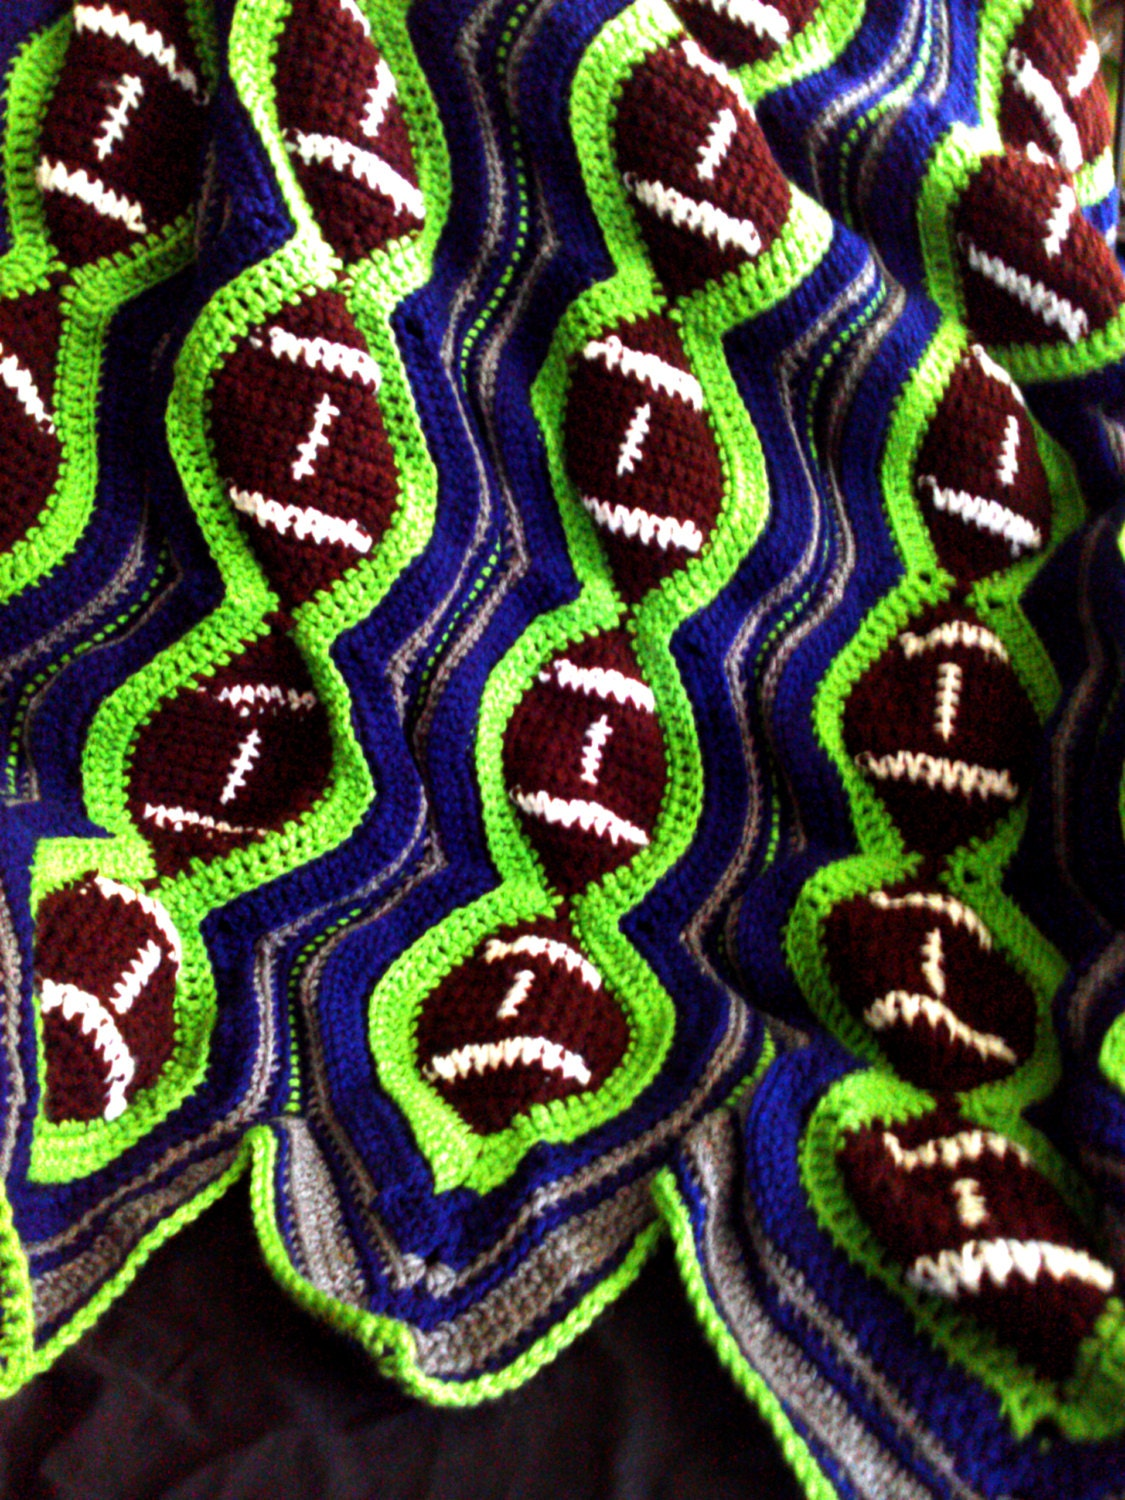 Crochet Pattern For Football Blanket : Crochet football blanket in Seattle SeaHawks colors by ...